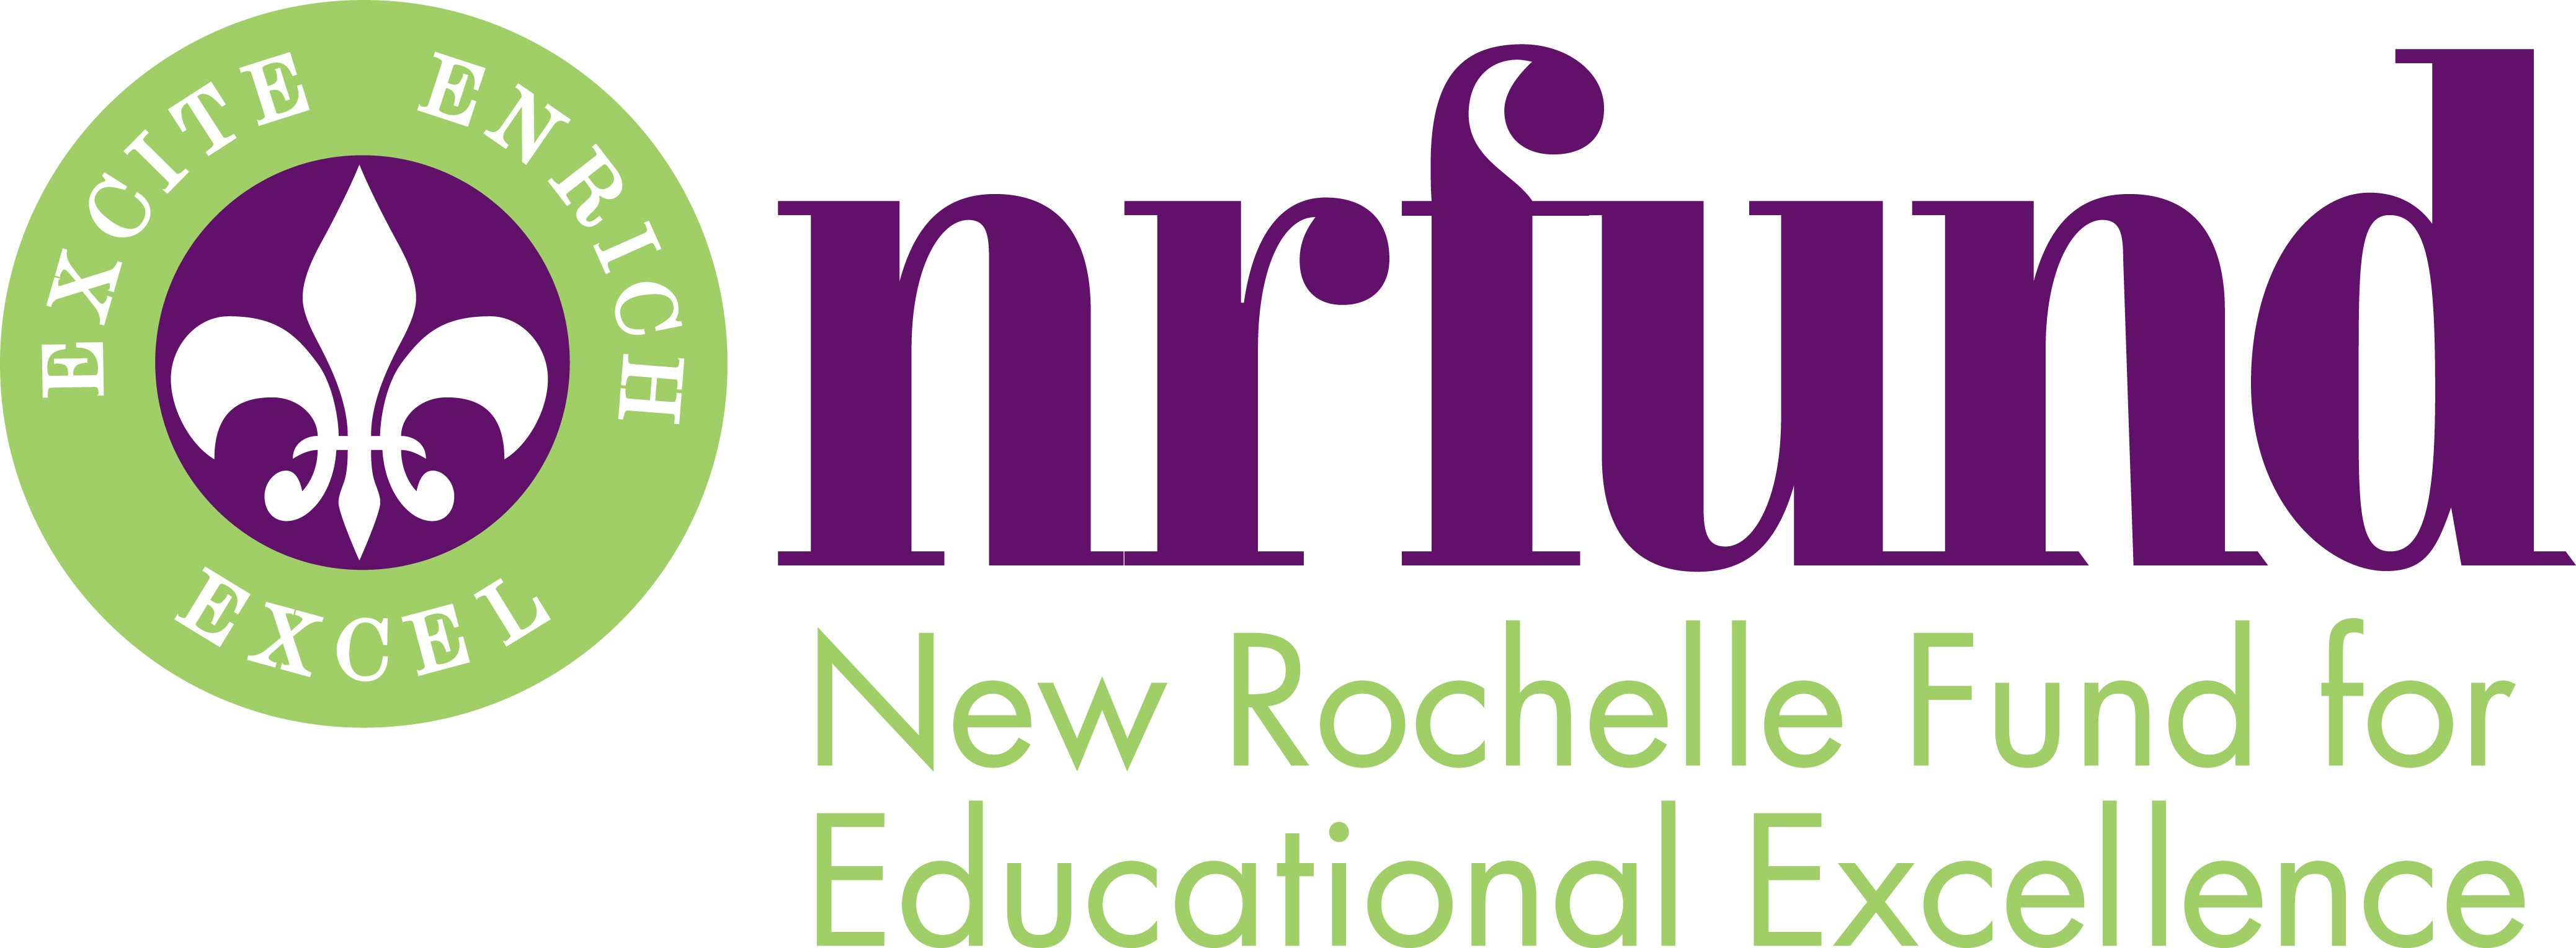 New Rochelle High School SAT/ACT Prep Classes   Applerouth